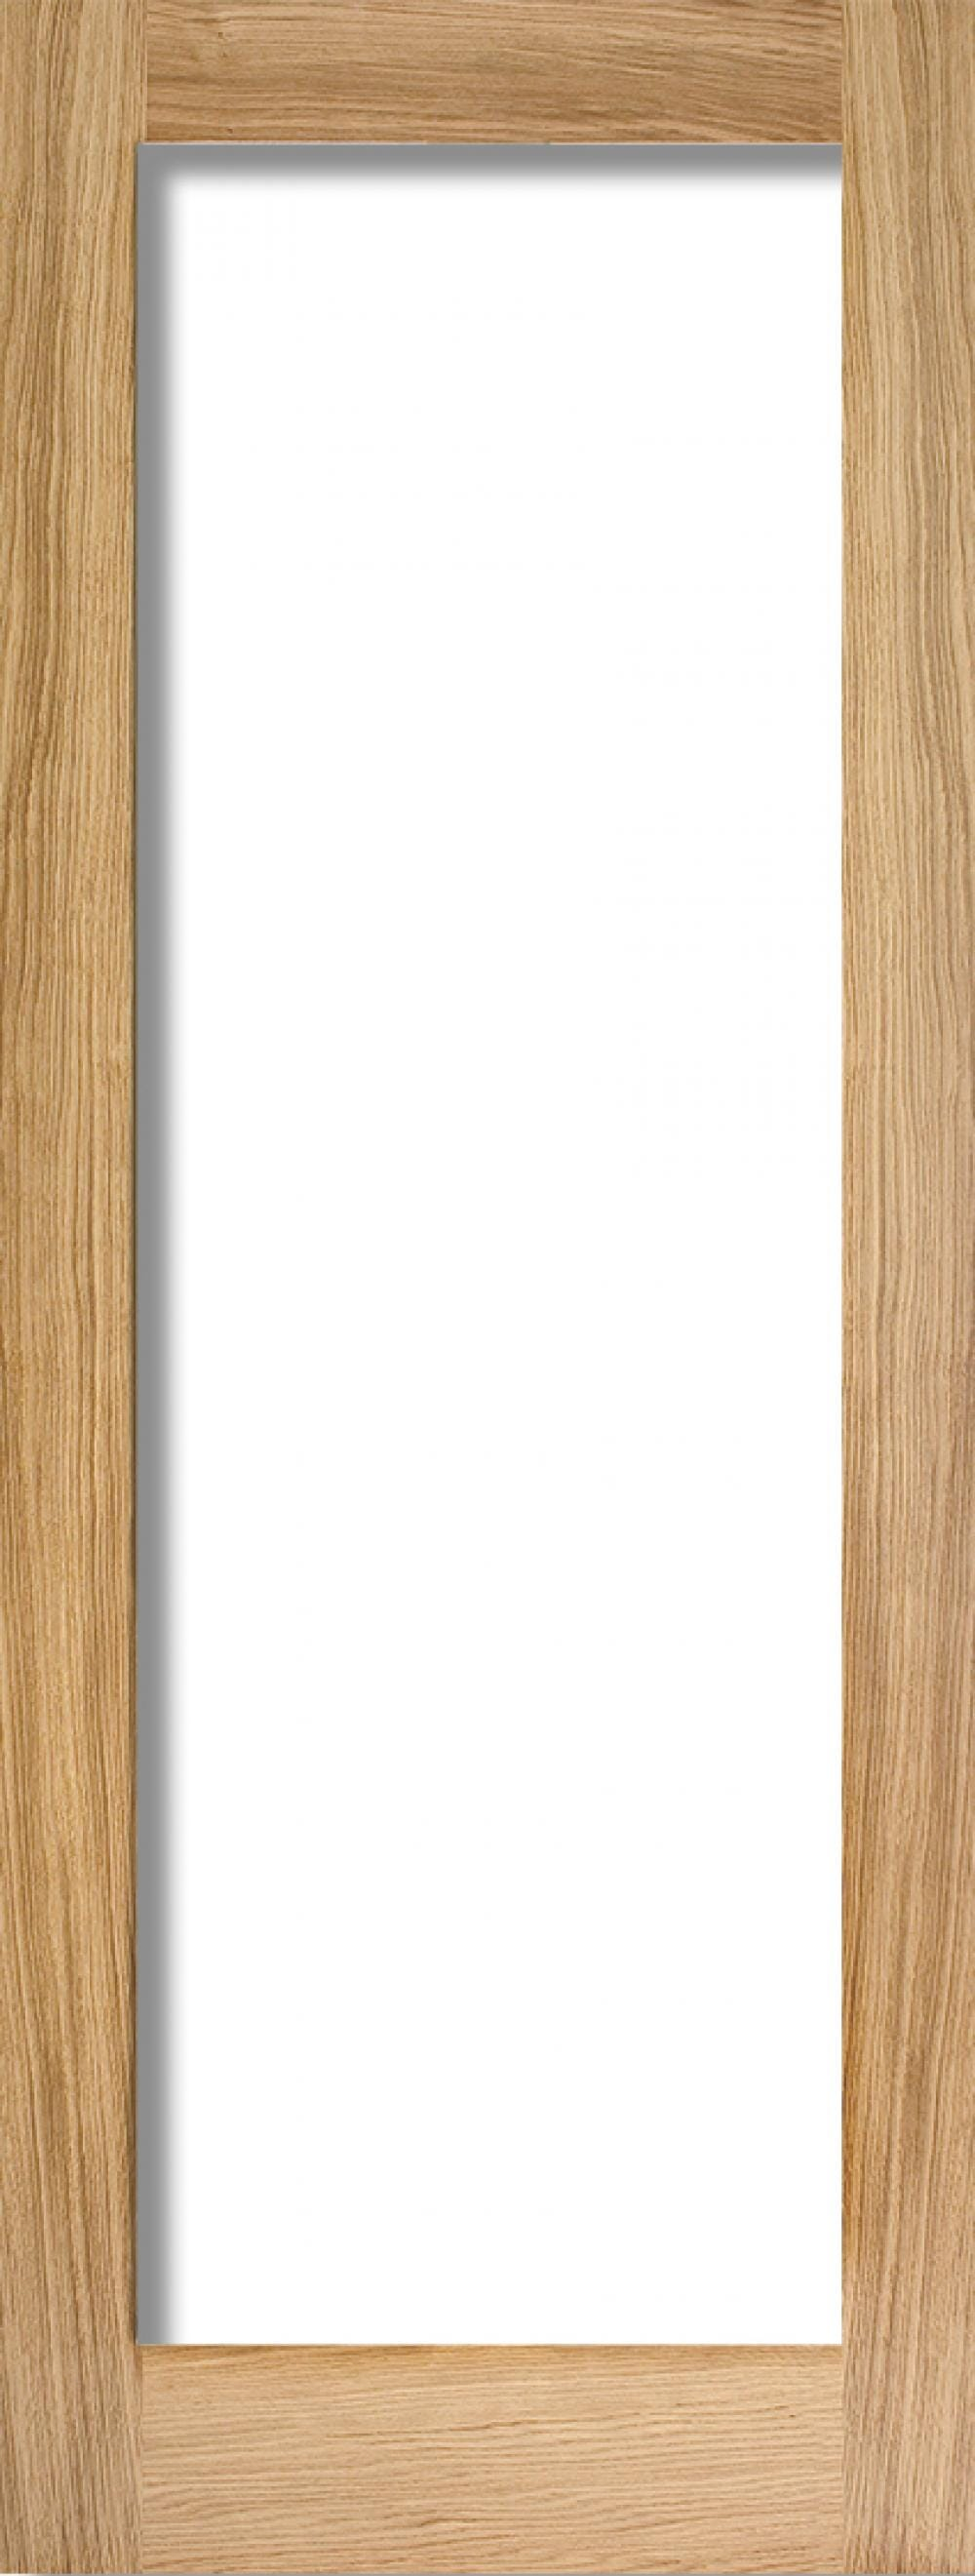 Glazed Oak P10 Fire Door - Clear Glass Image